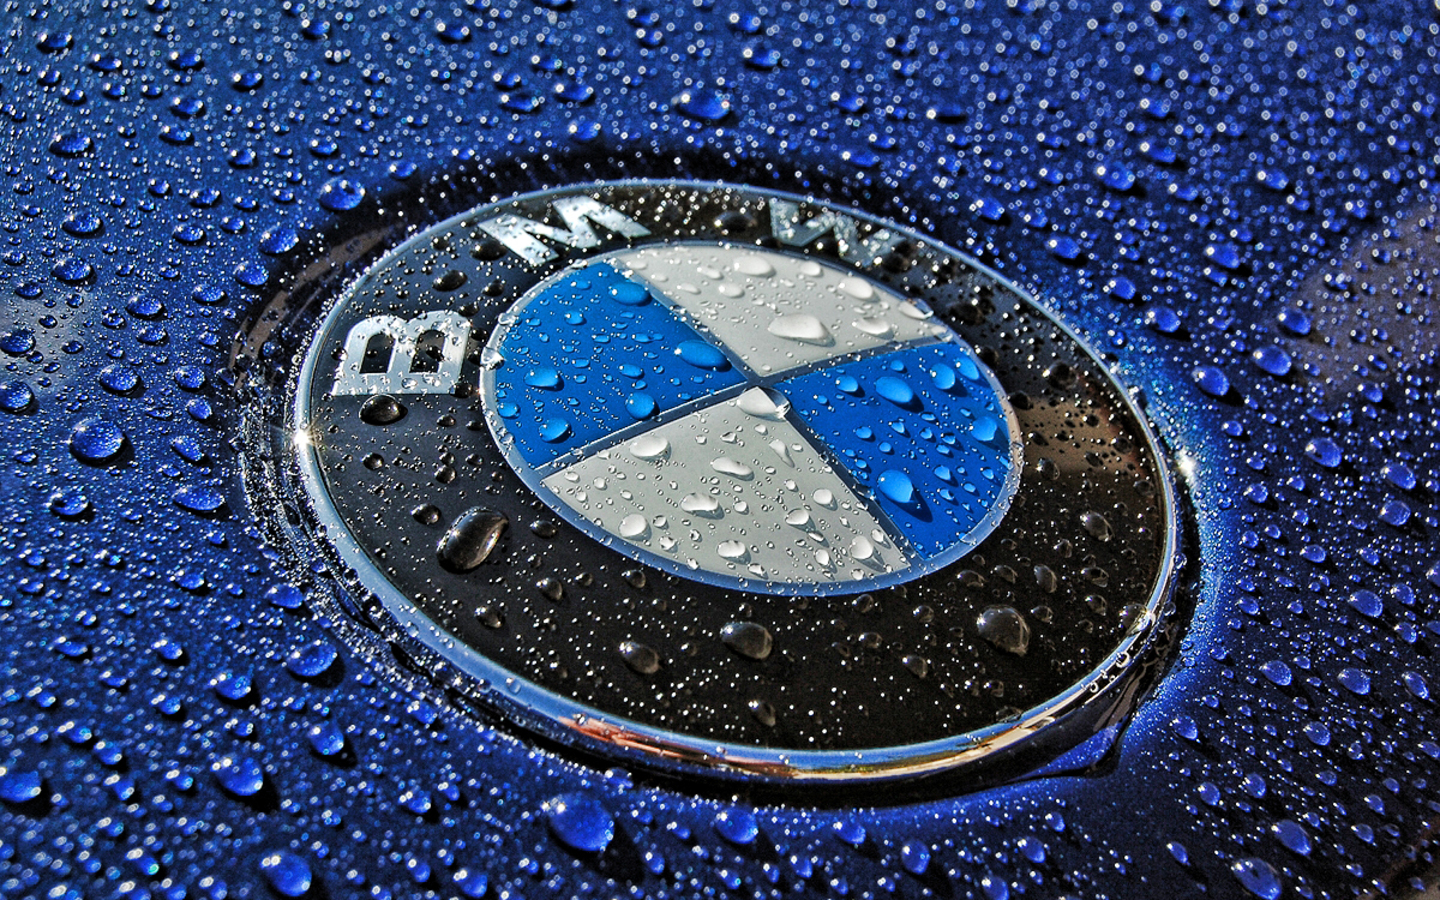 10 Things You Didn't Know About BMW | The company logo